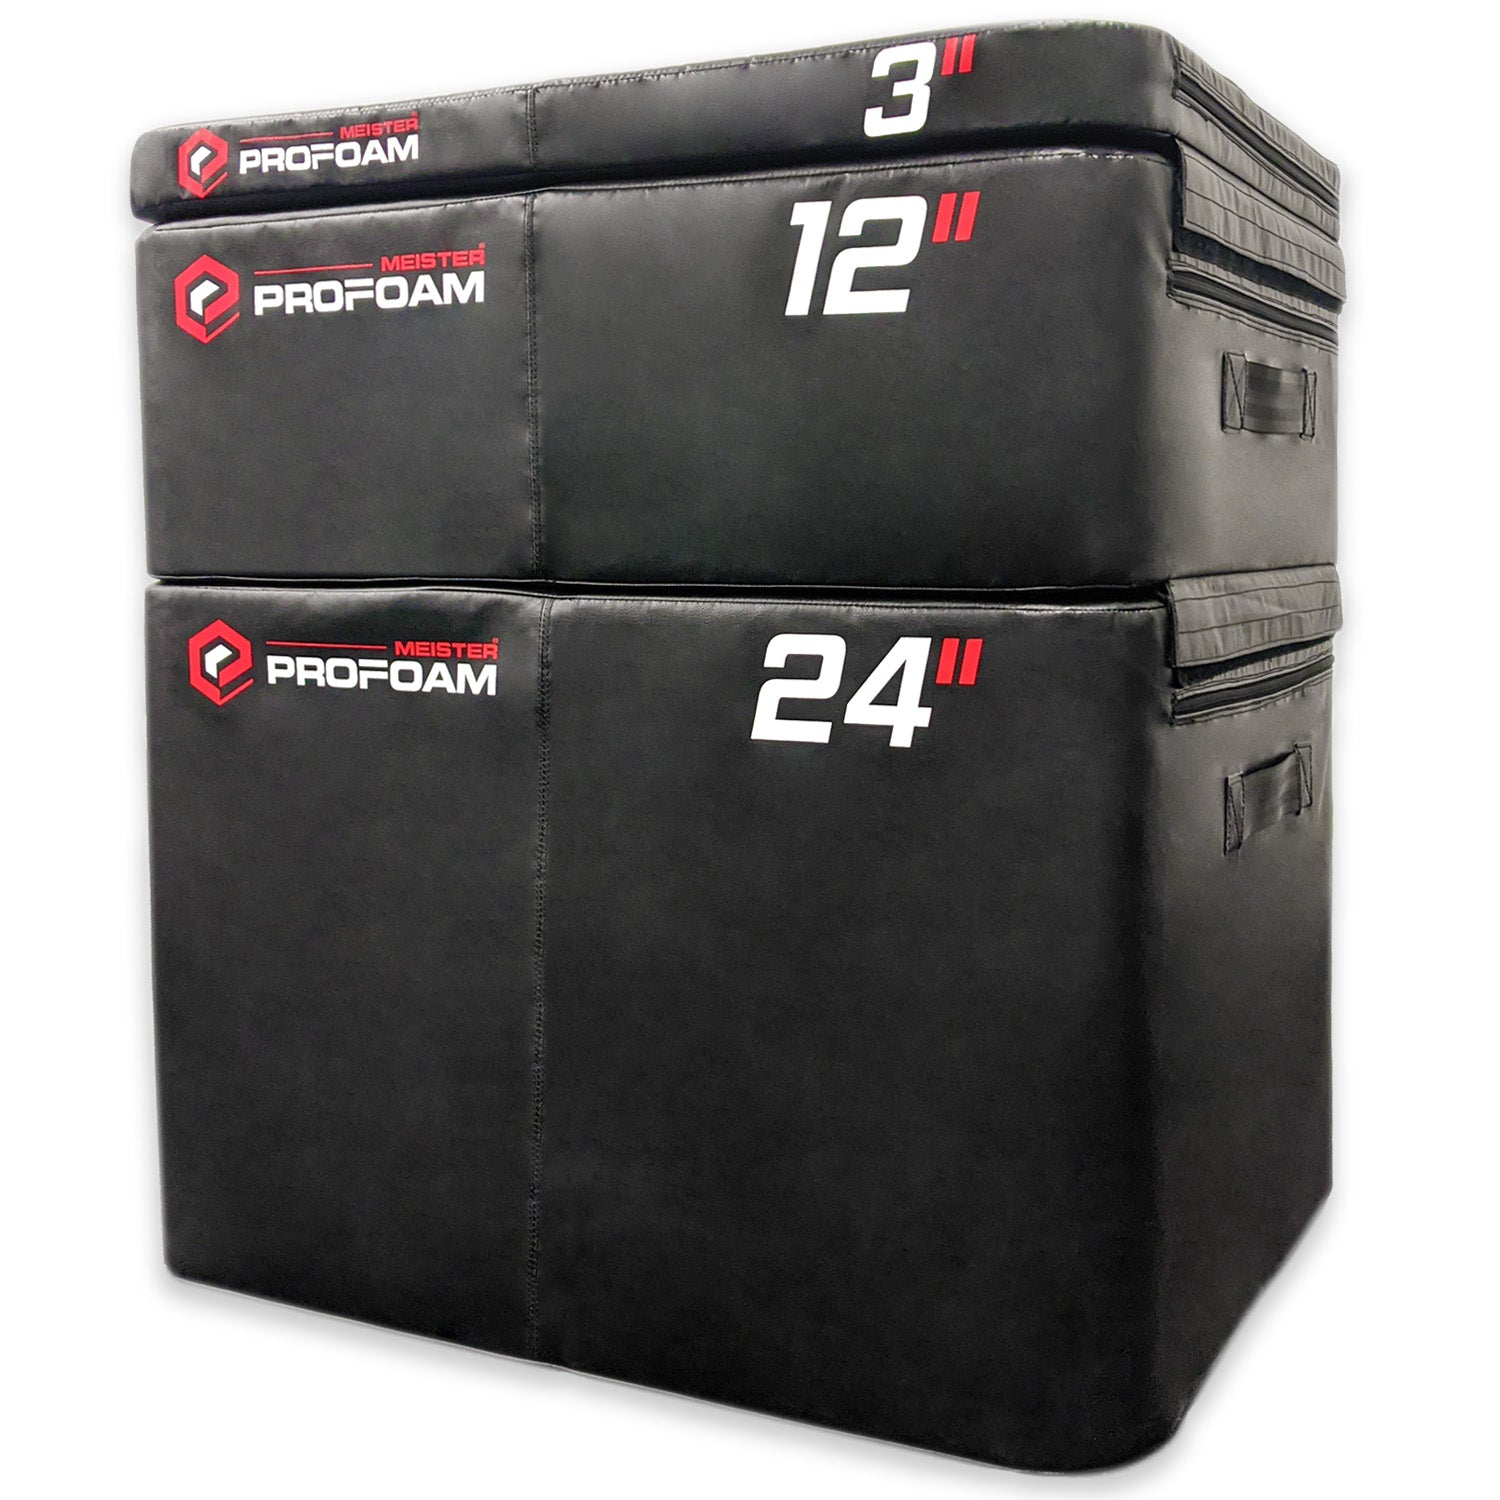 "Meister PROFOAM™ Plyo Boxes - 3 Box Set - 24"", 12"", 3"""